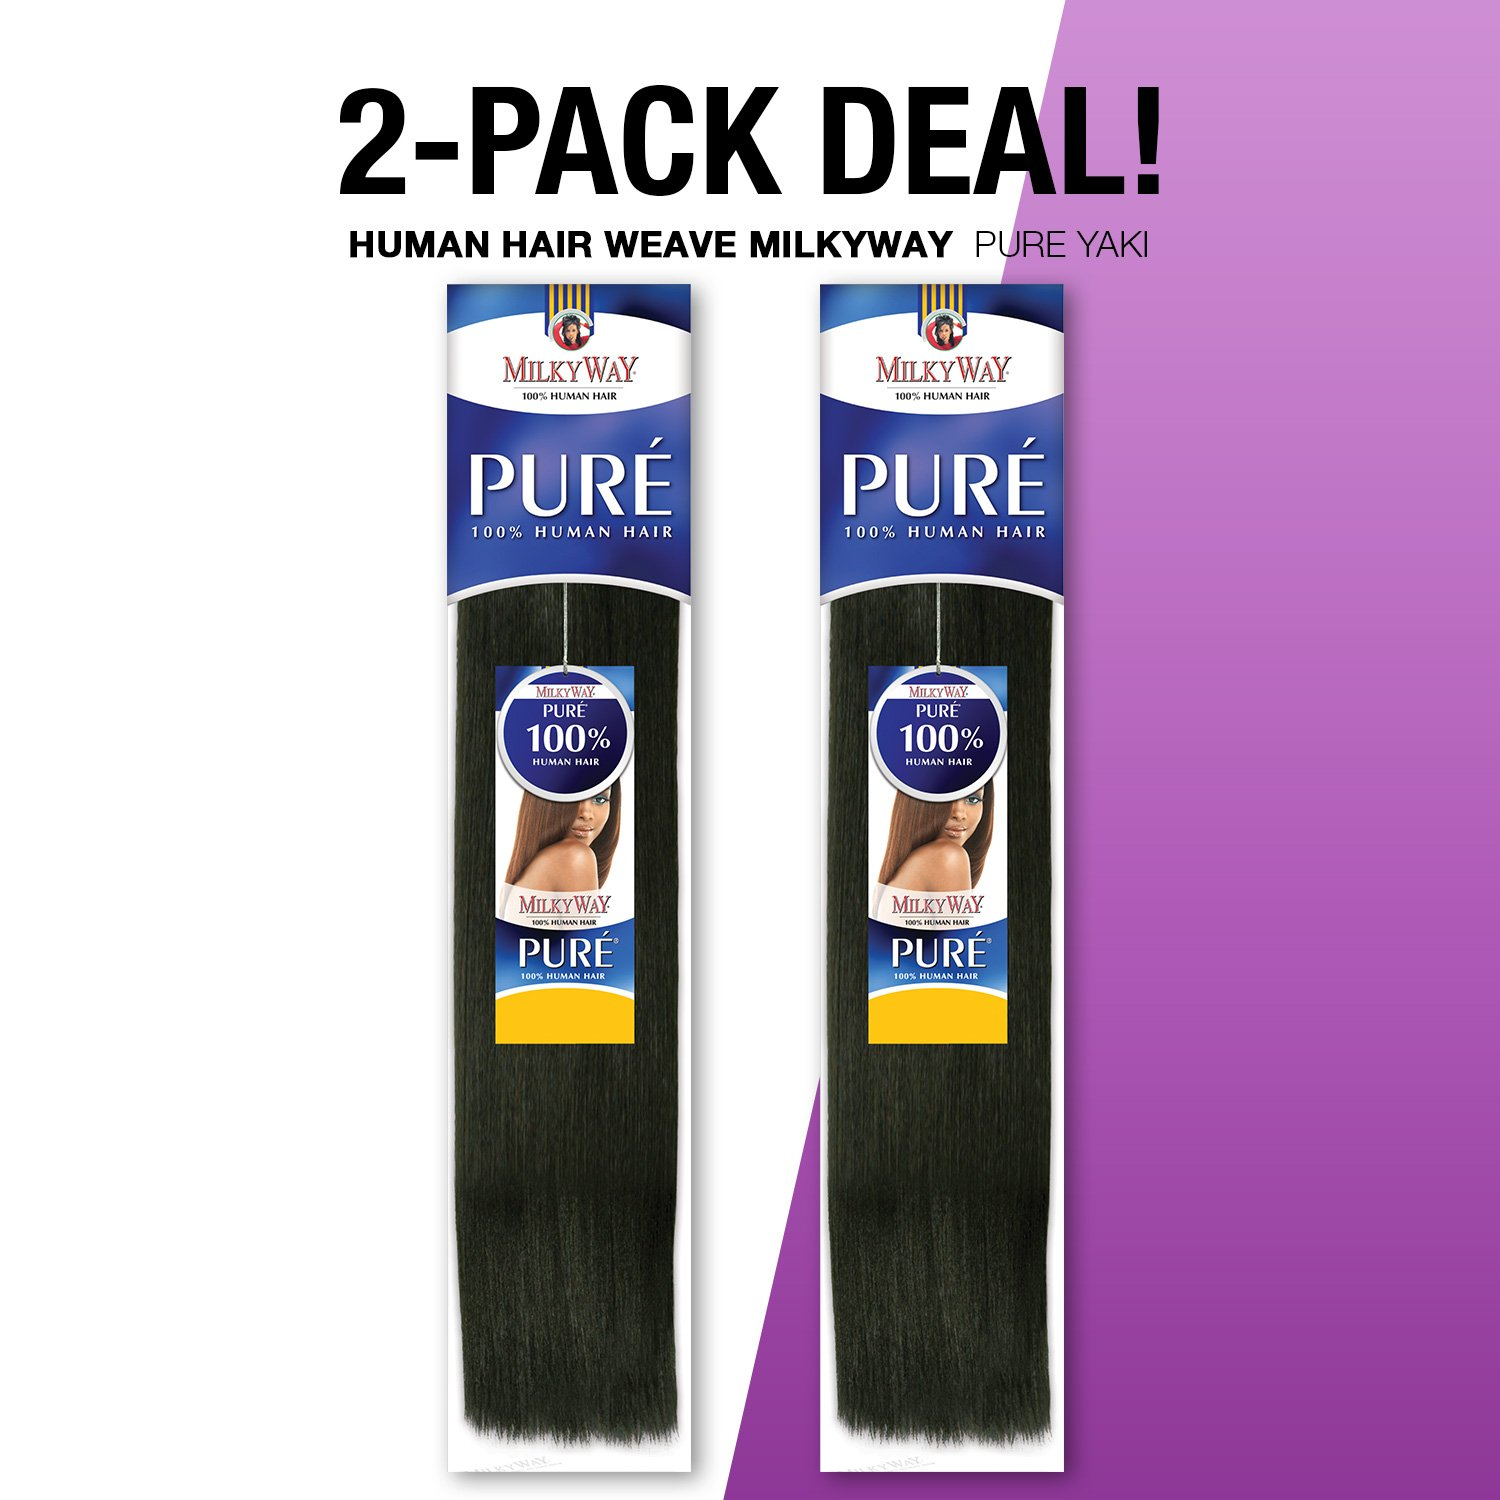 Amazon 2 Pack Deals Human Hair Weave Milkyway Pure Yaki 12